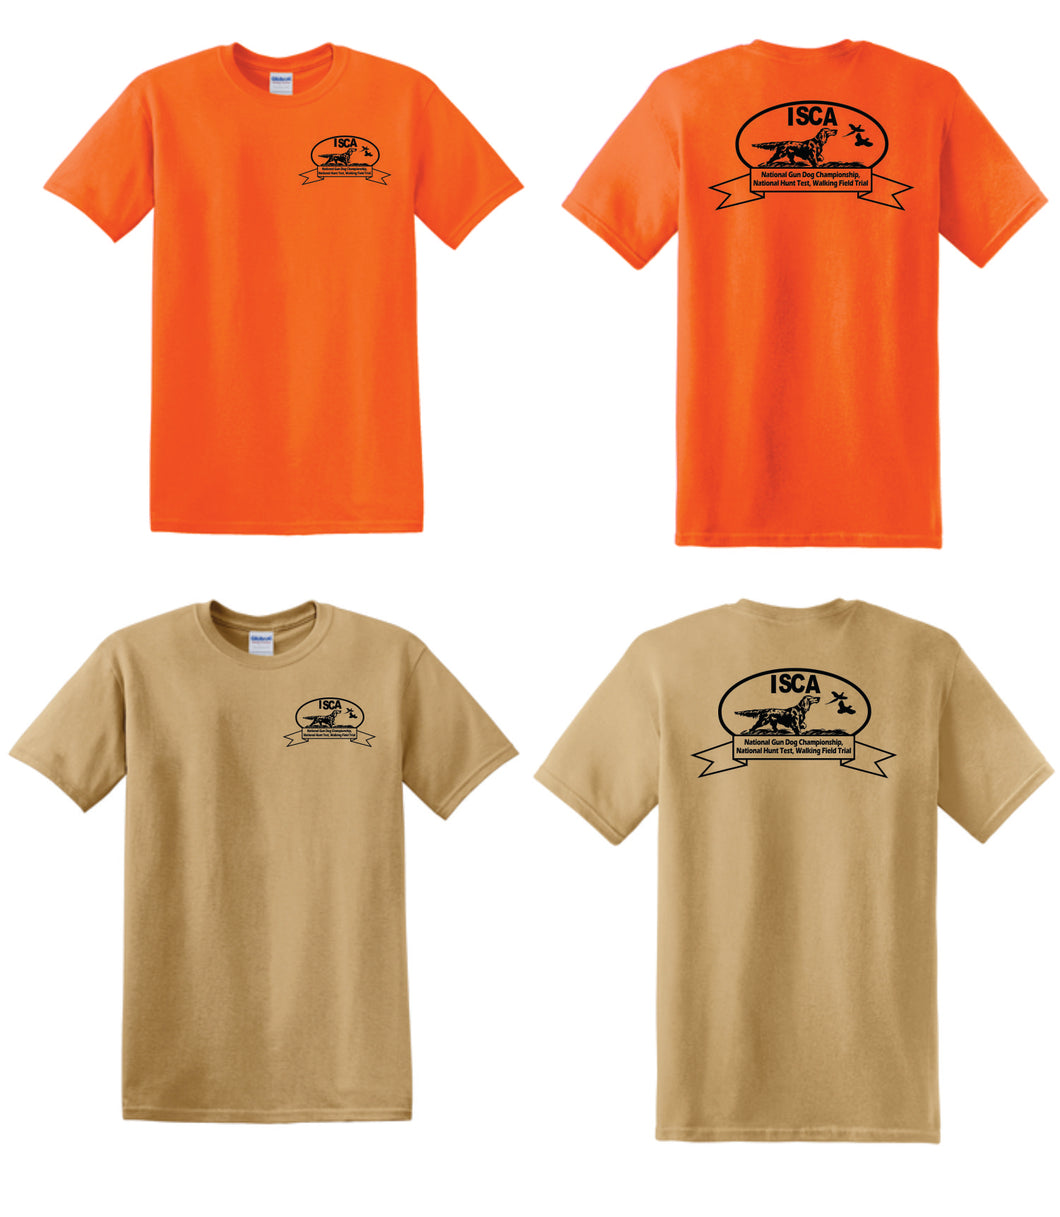 ISCA Short Sleeve T-Shirt